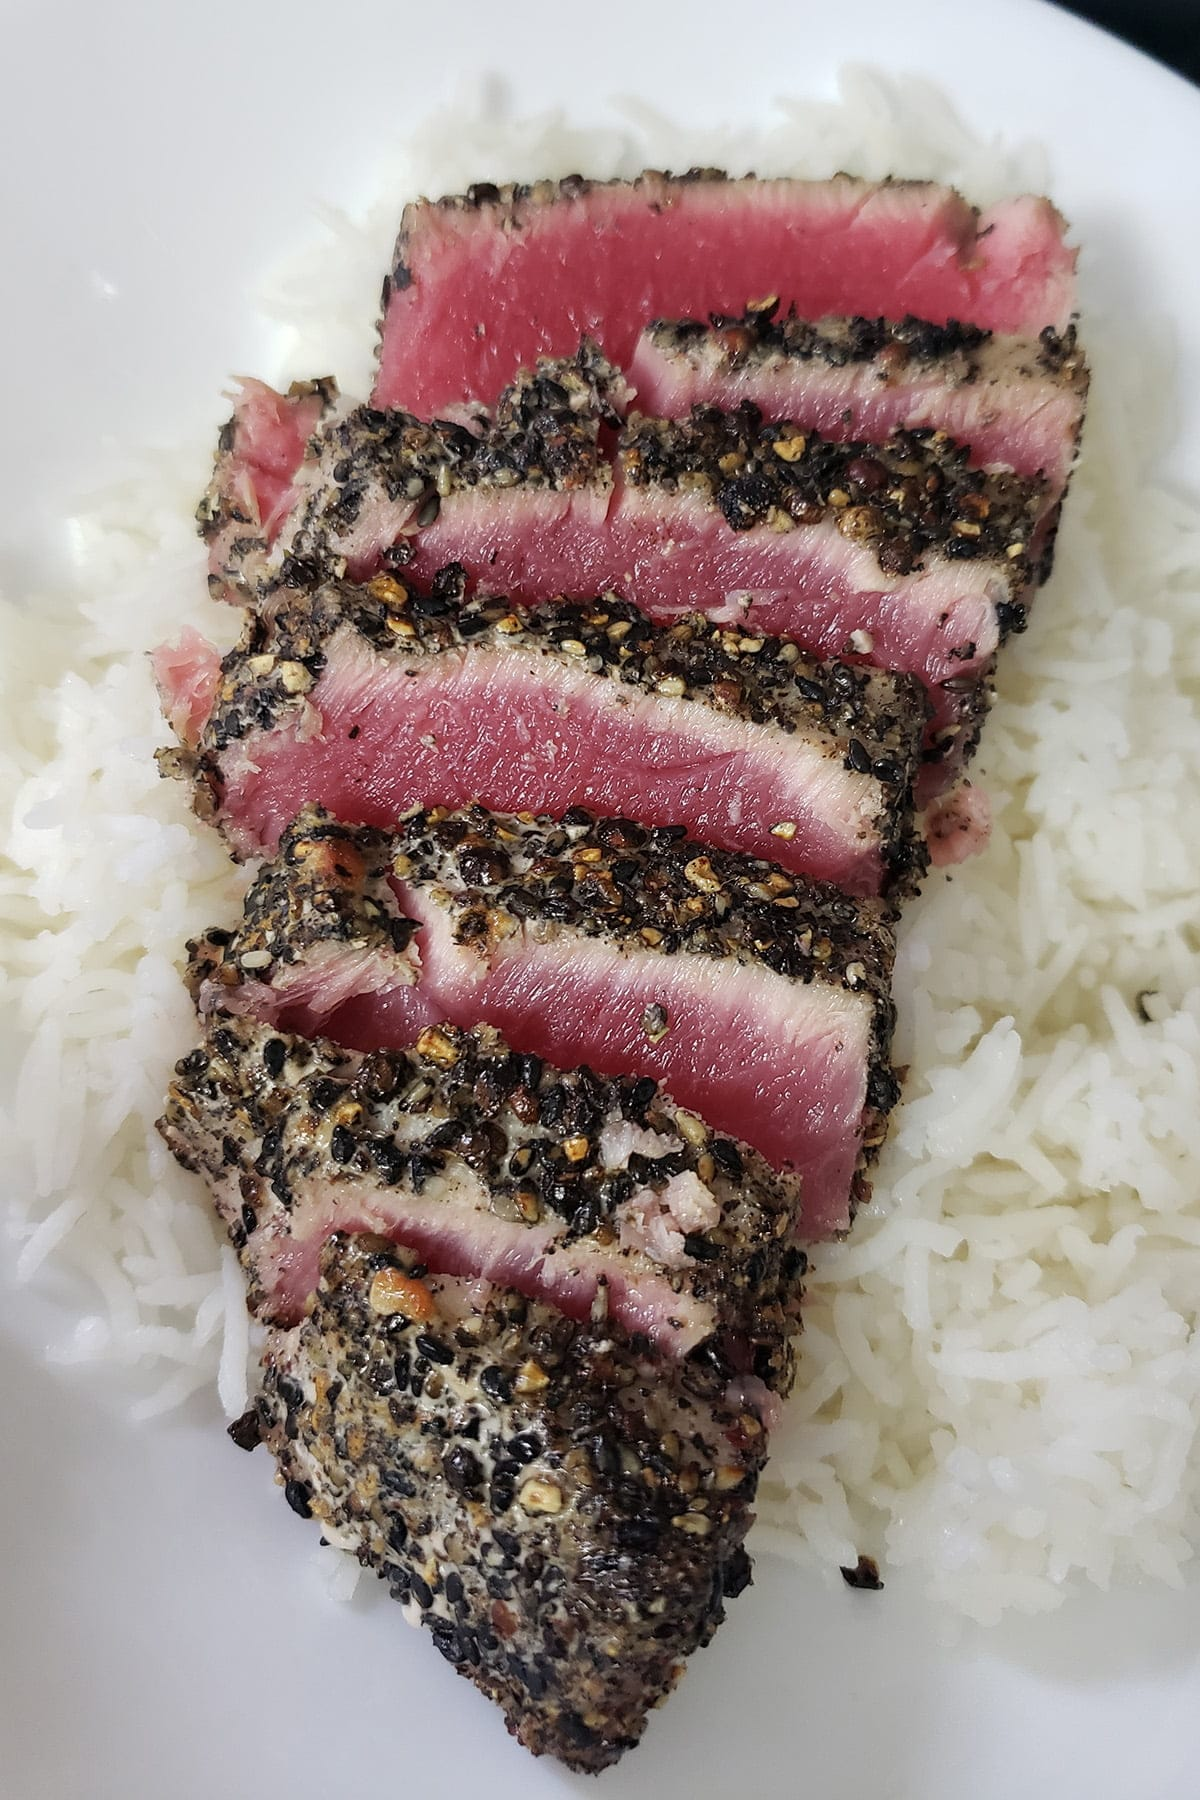 A pepper crusted tuna steak, cooked rare, has been sliced and fanned out over some rice.